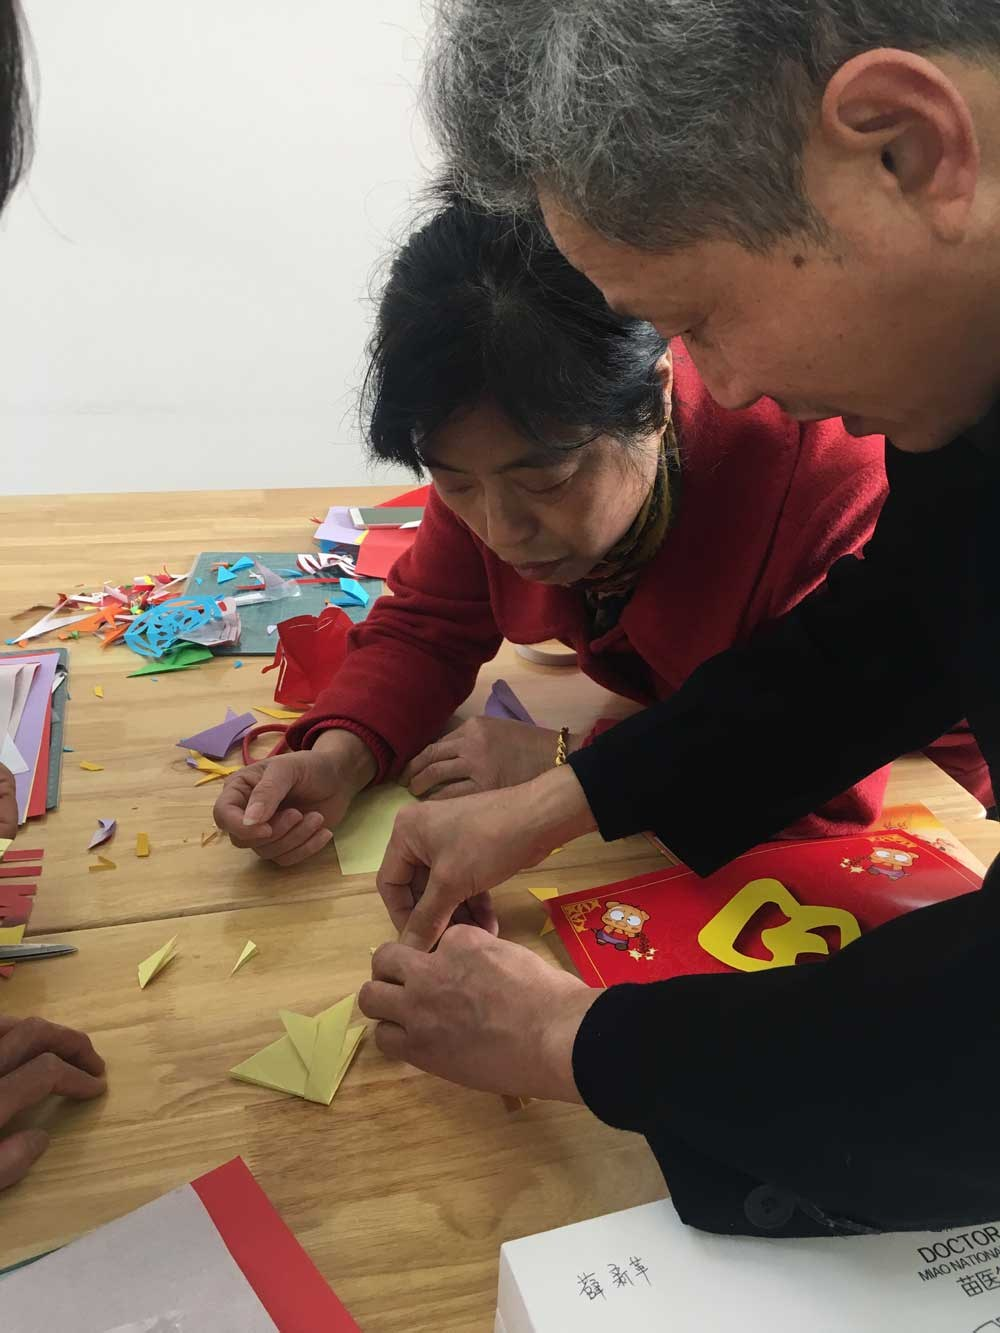 Wen Shixiong (right) teaches a student paper-cutting skills at the Jingjiang Senior Citizen School.